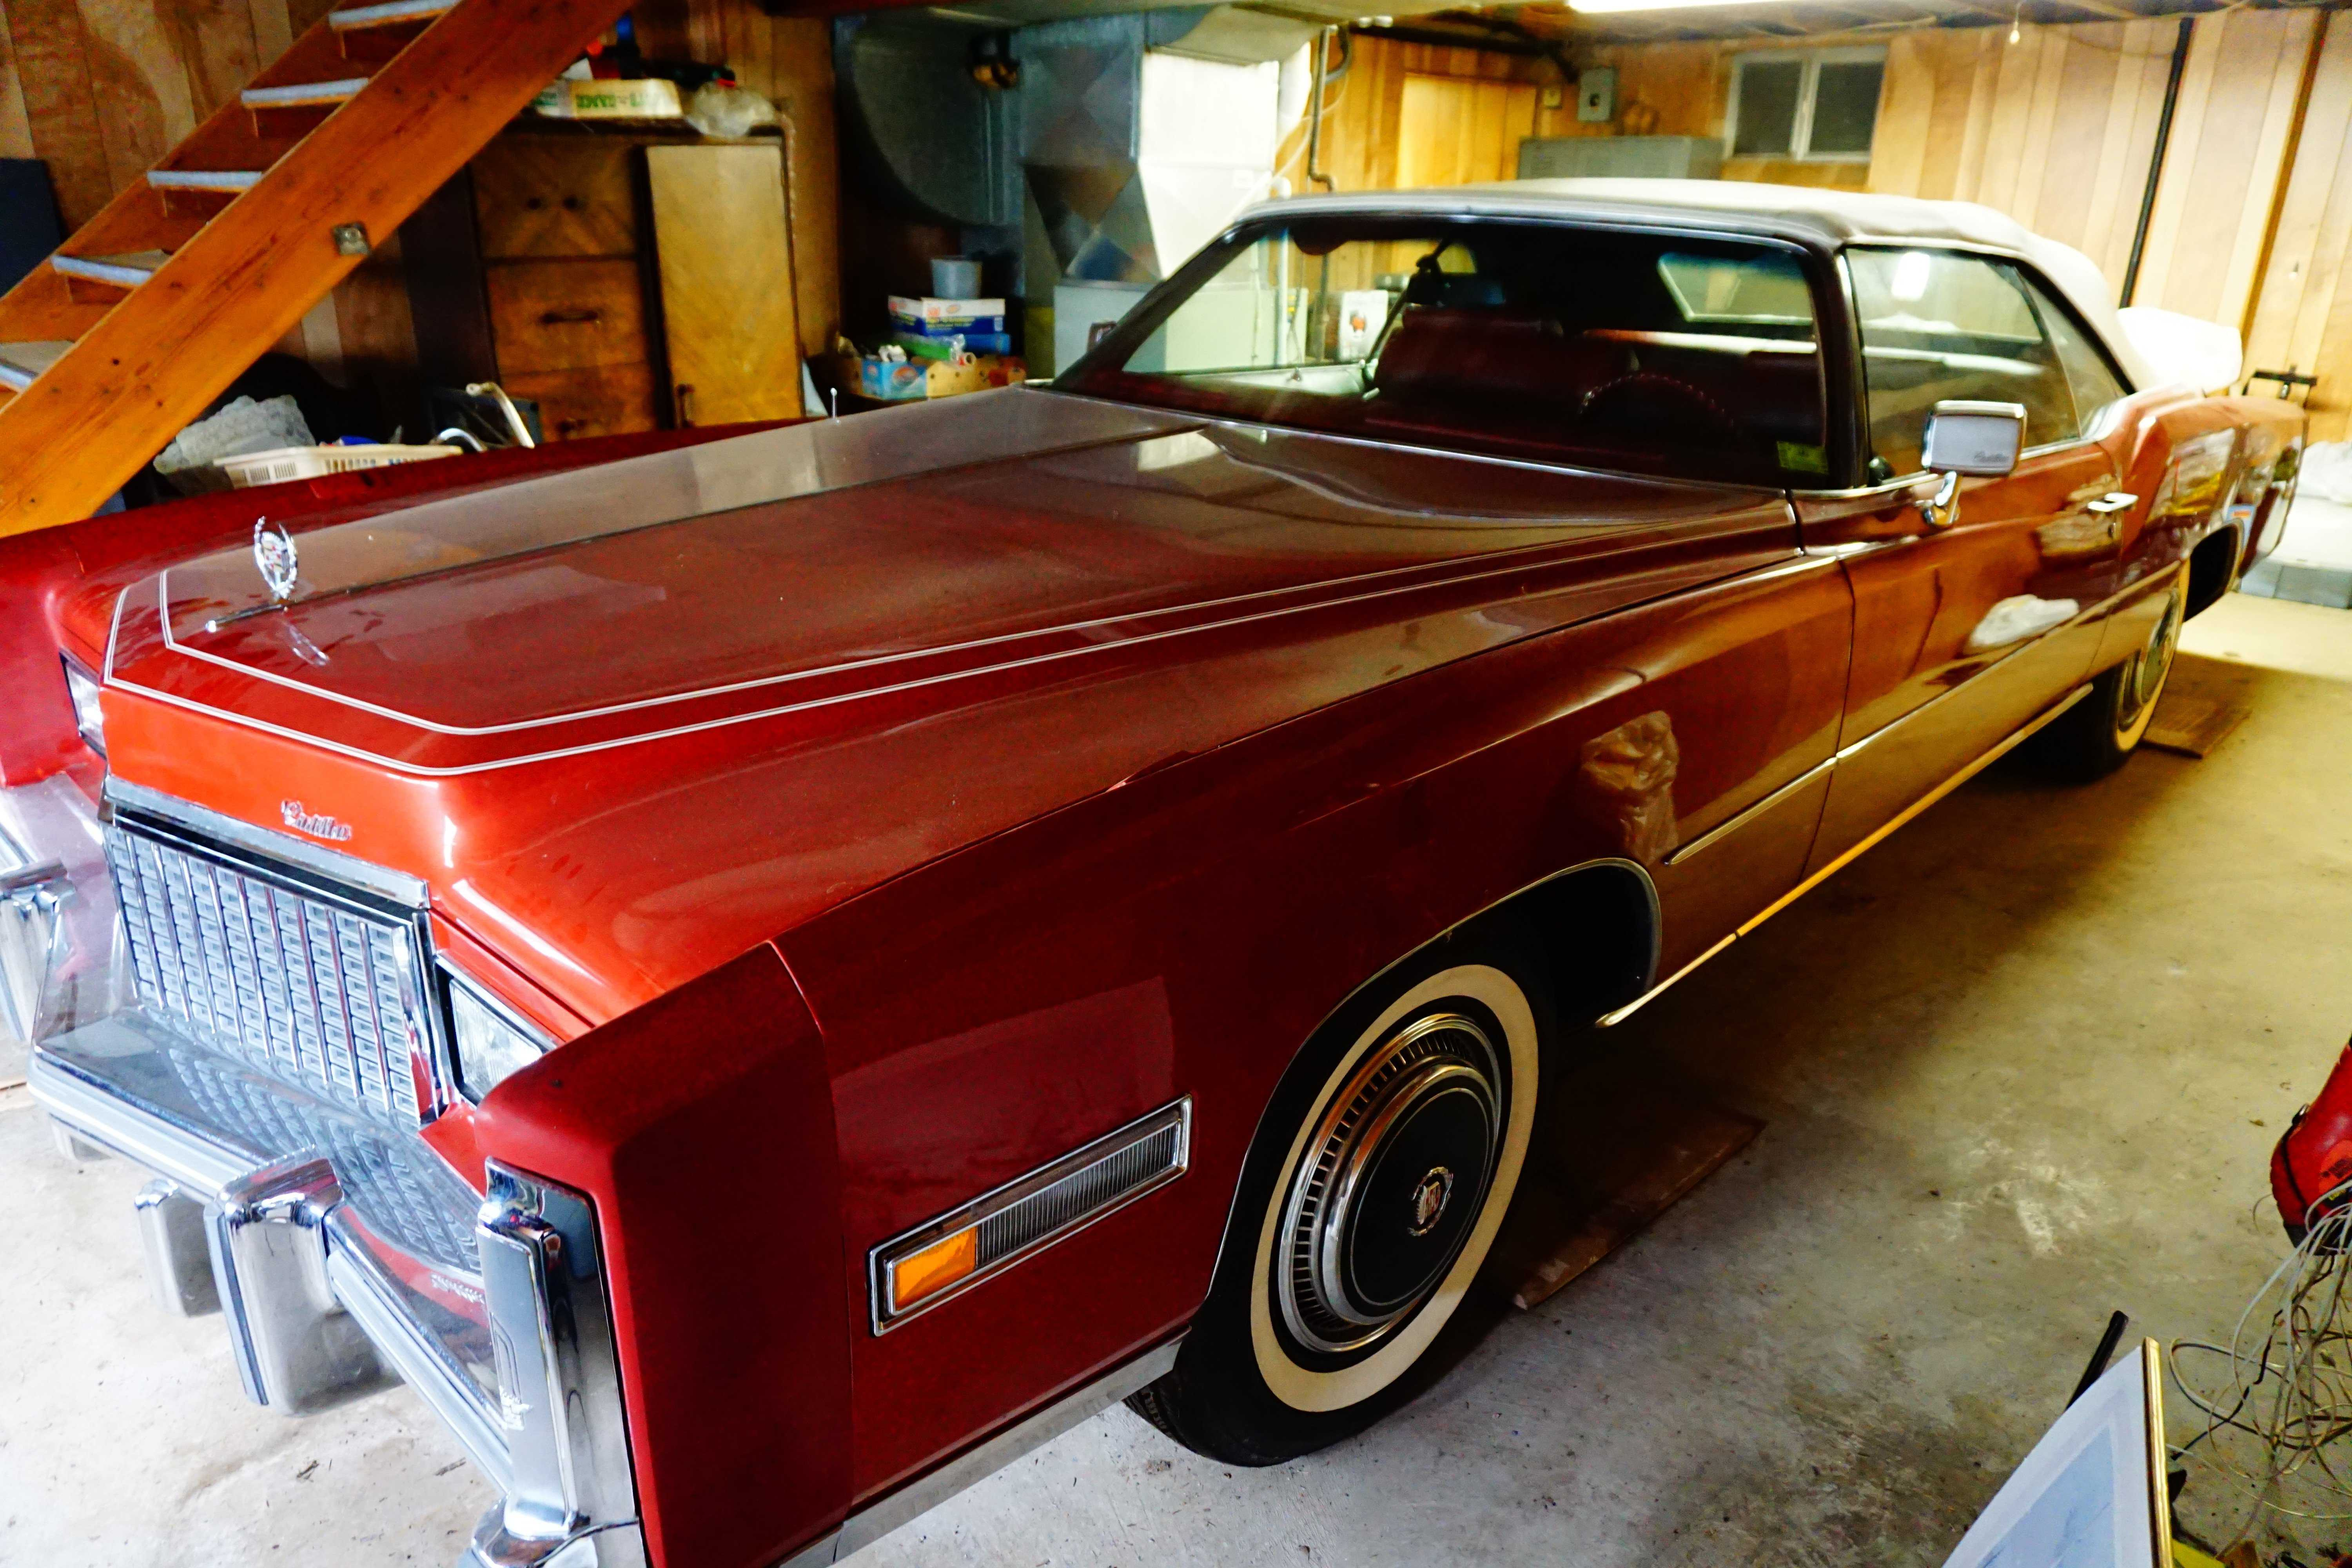 1976 Cadillac Fleetwood for sale in Beaver Falls, PA ...